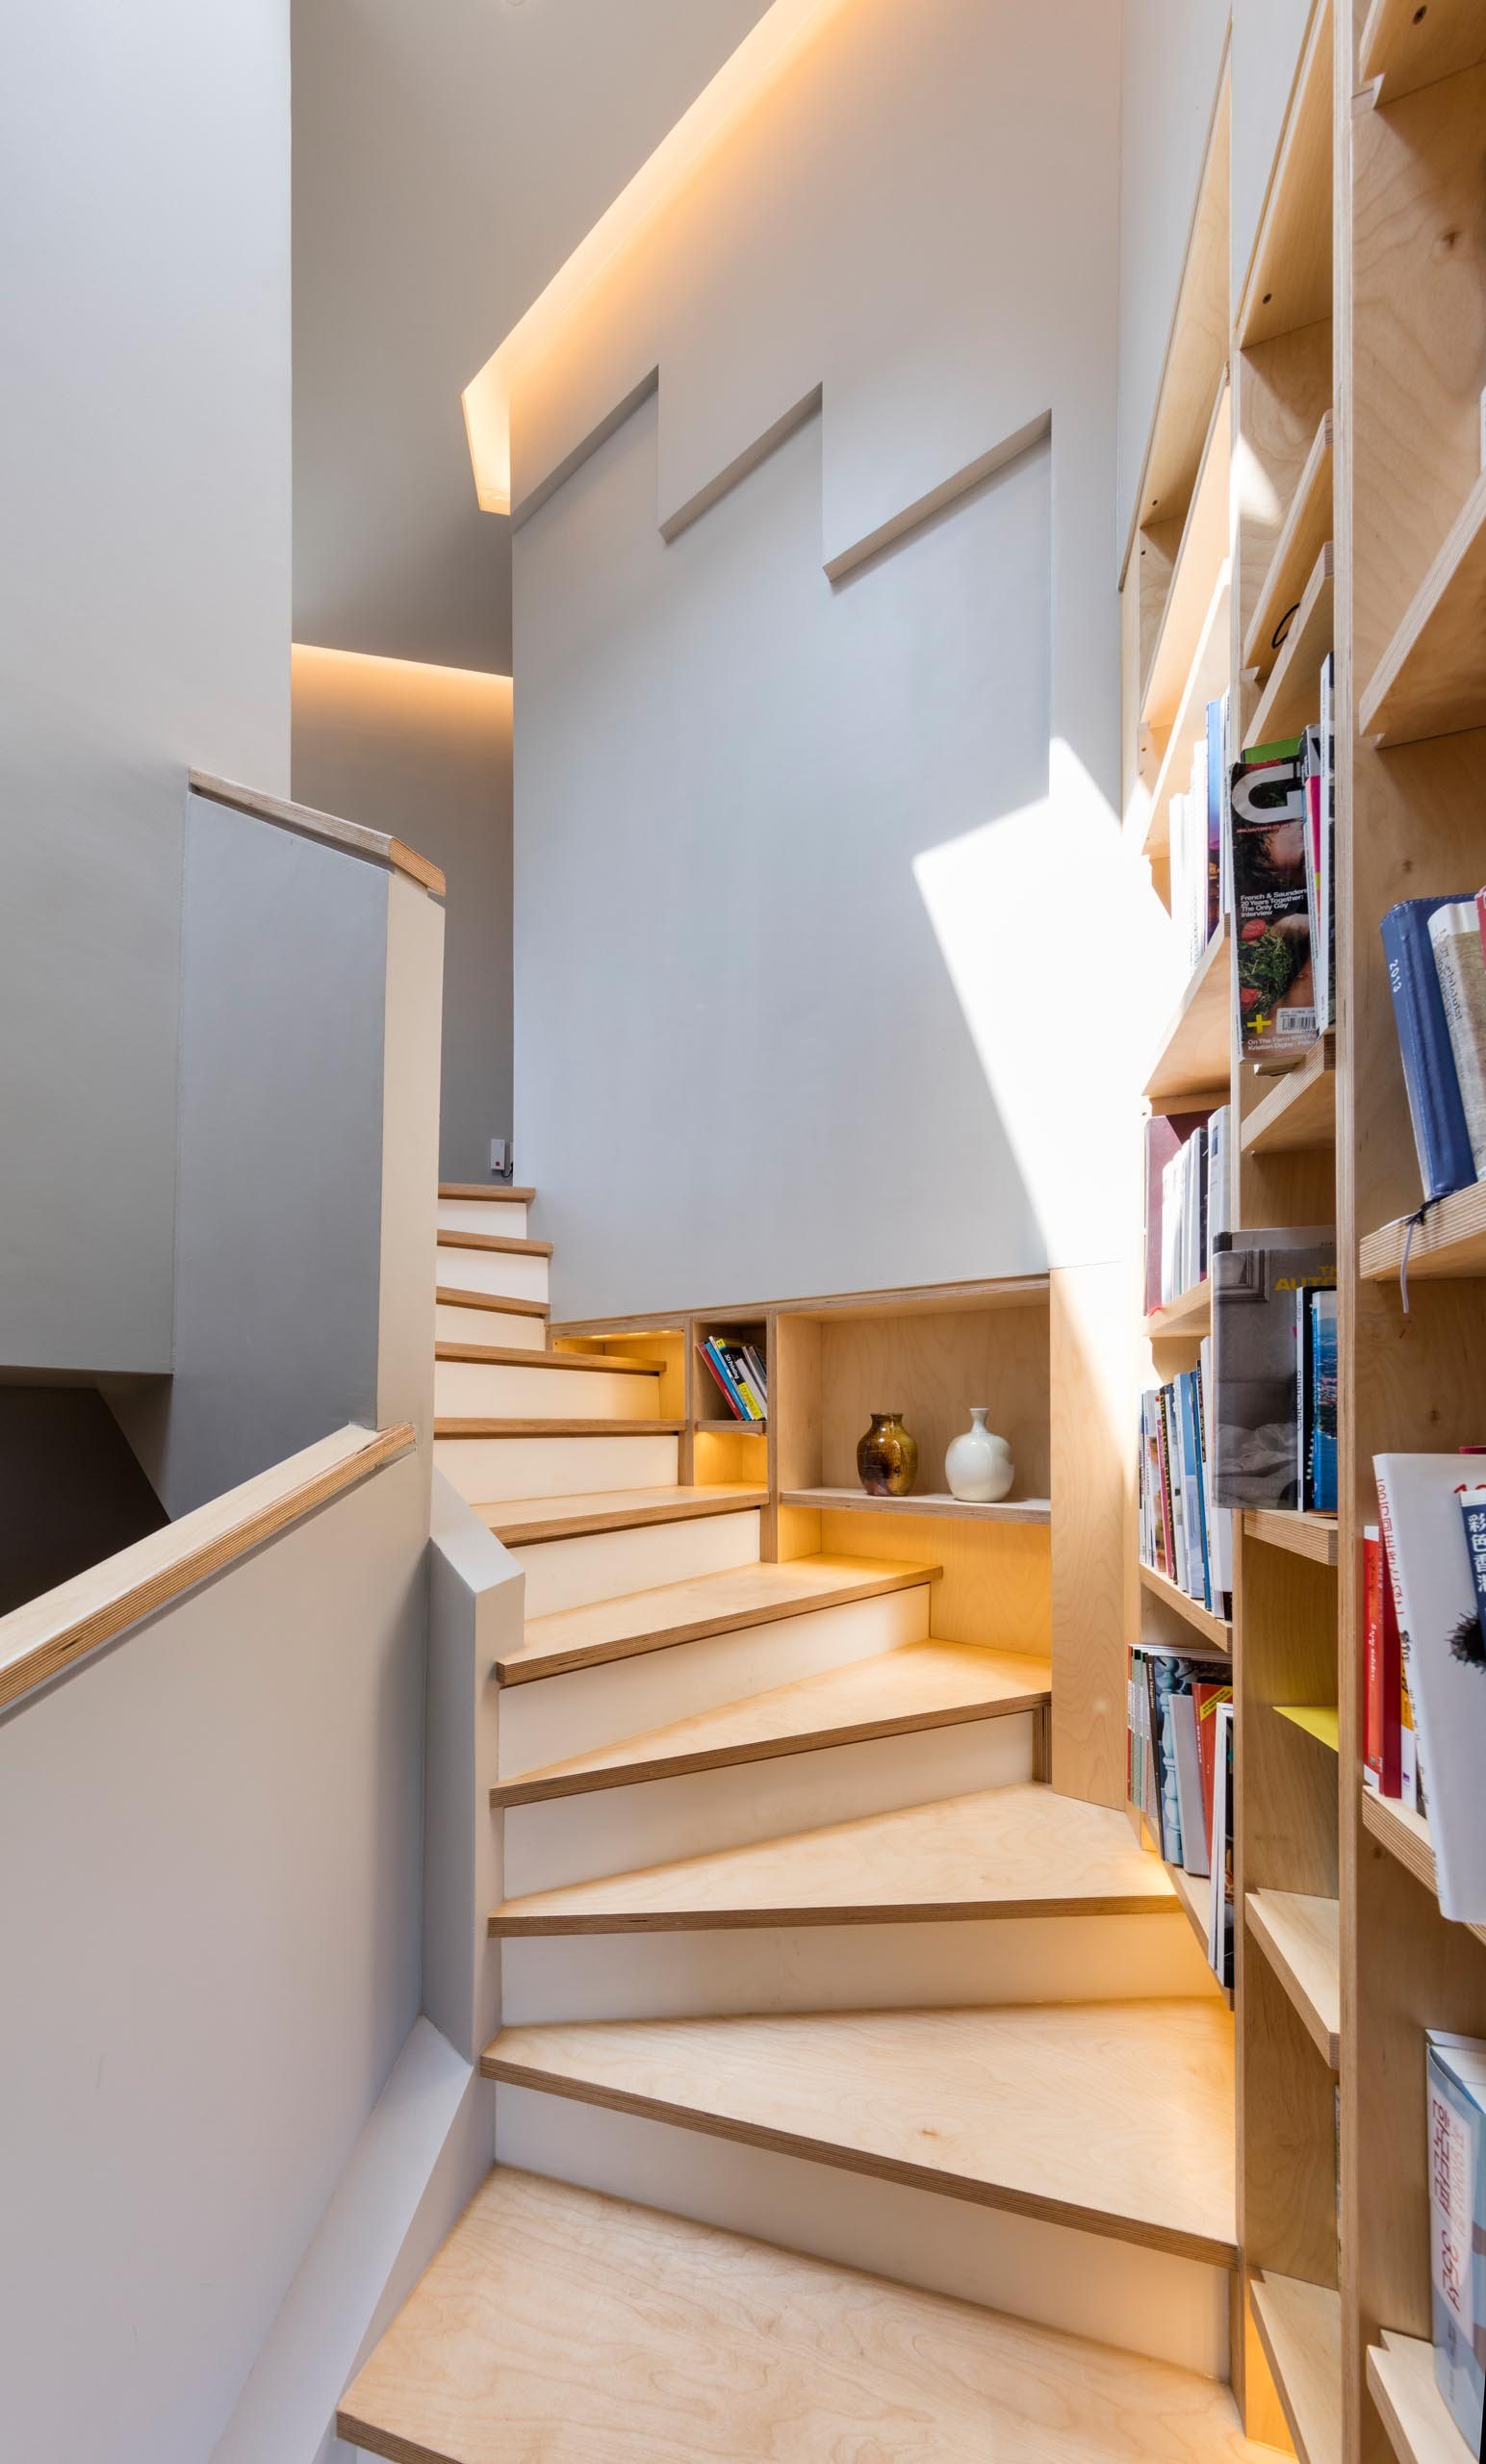 A built-in bookshelf lined with wood that follows the staircase in a modern home.